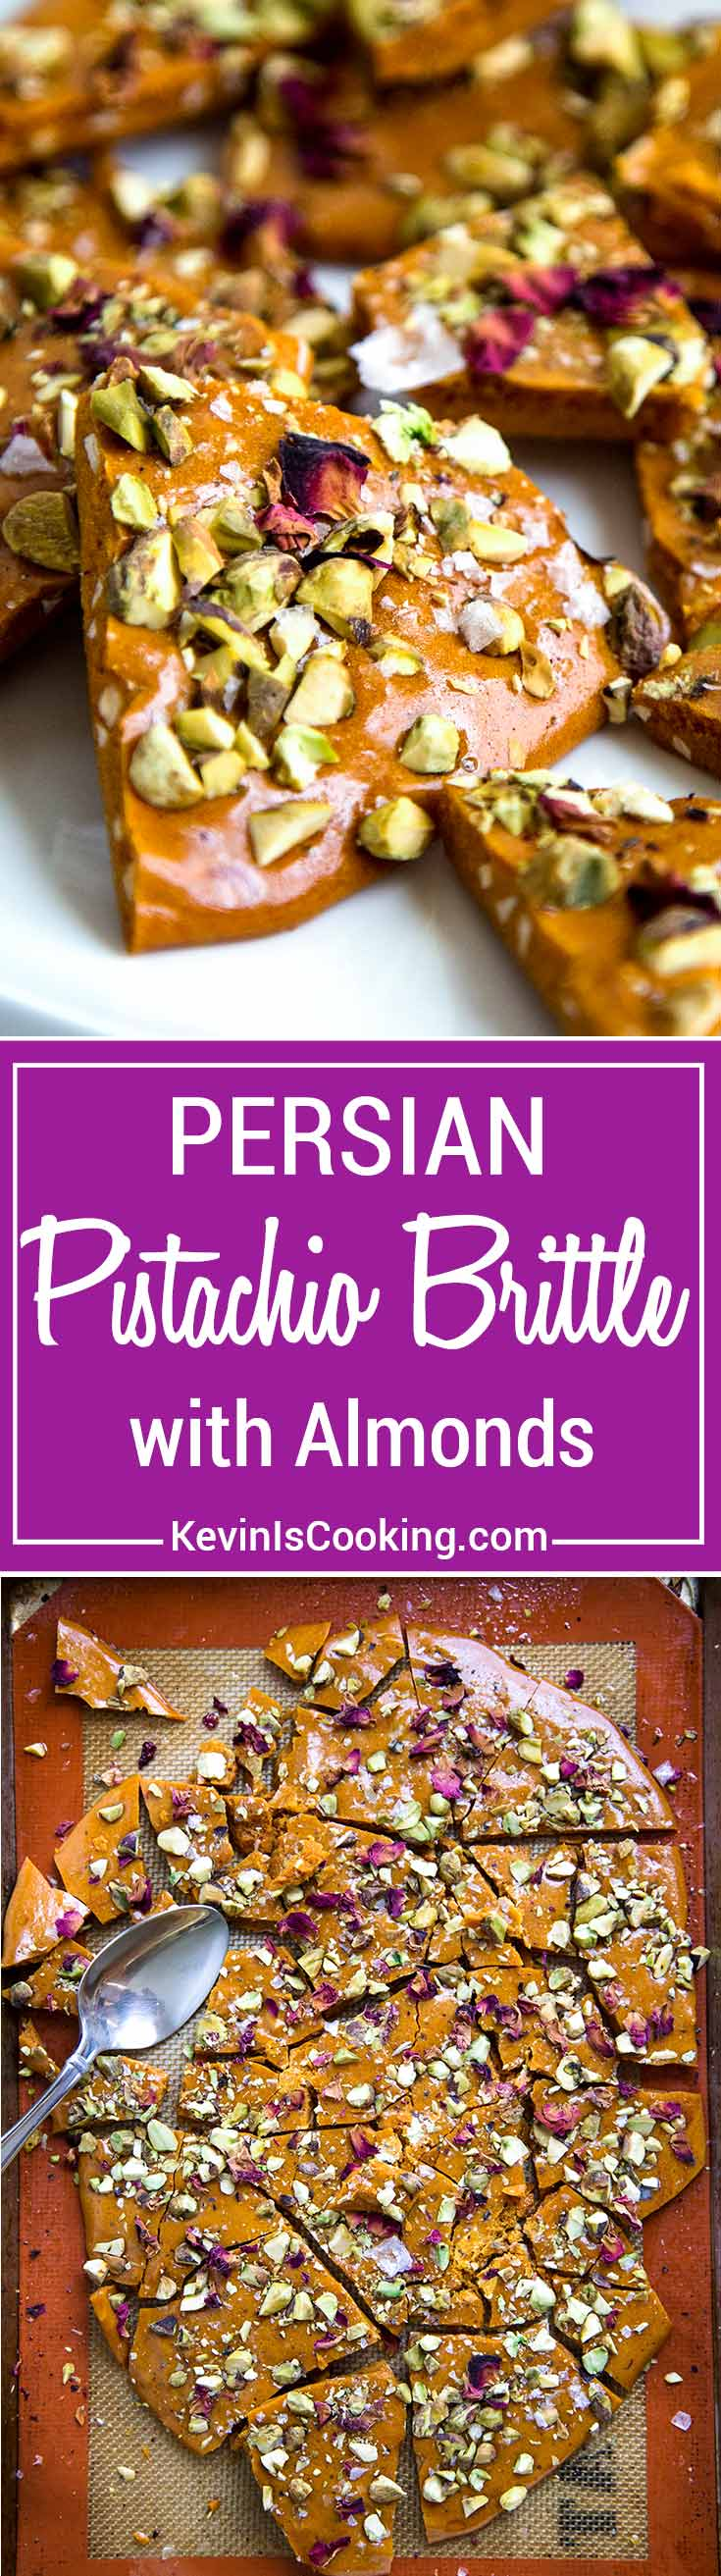 Persian Almond and Pistachio Brittle - Sweet and salty brittle with delicate Persian flavors like rose water, saffron, almonds and pistachios. So Good!